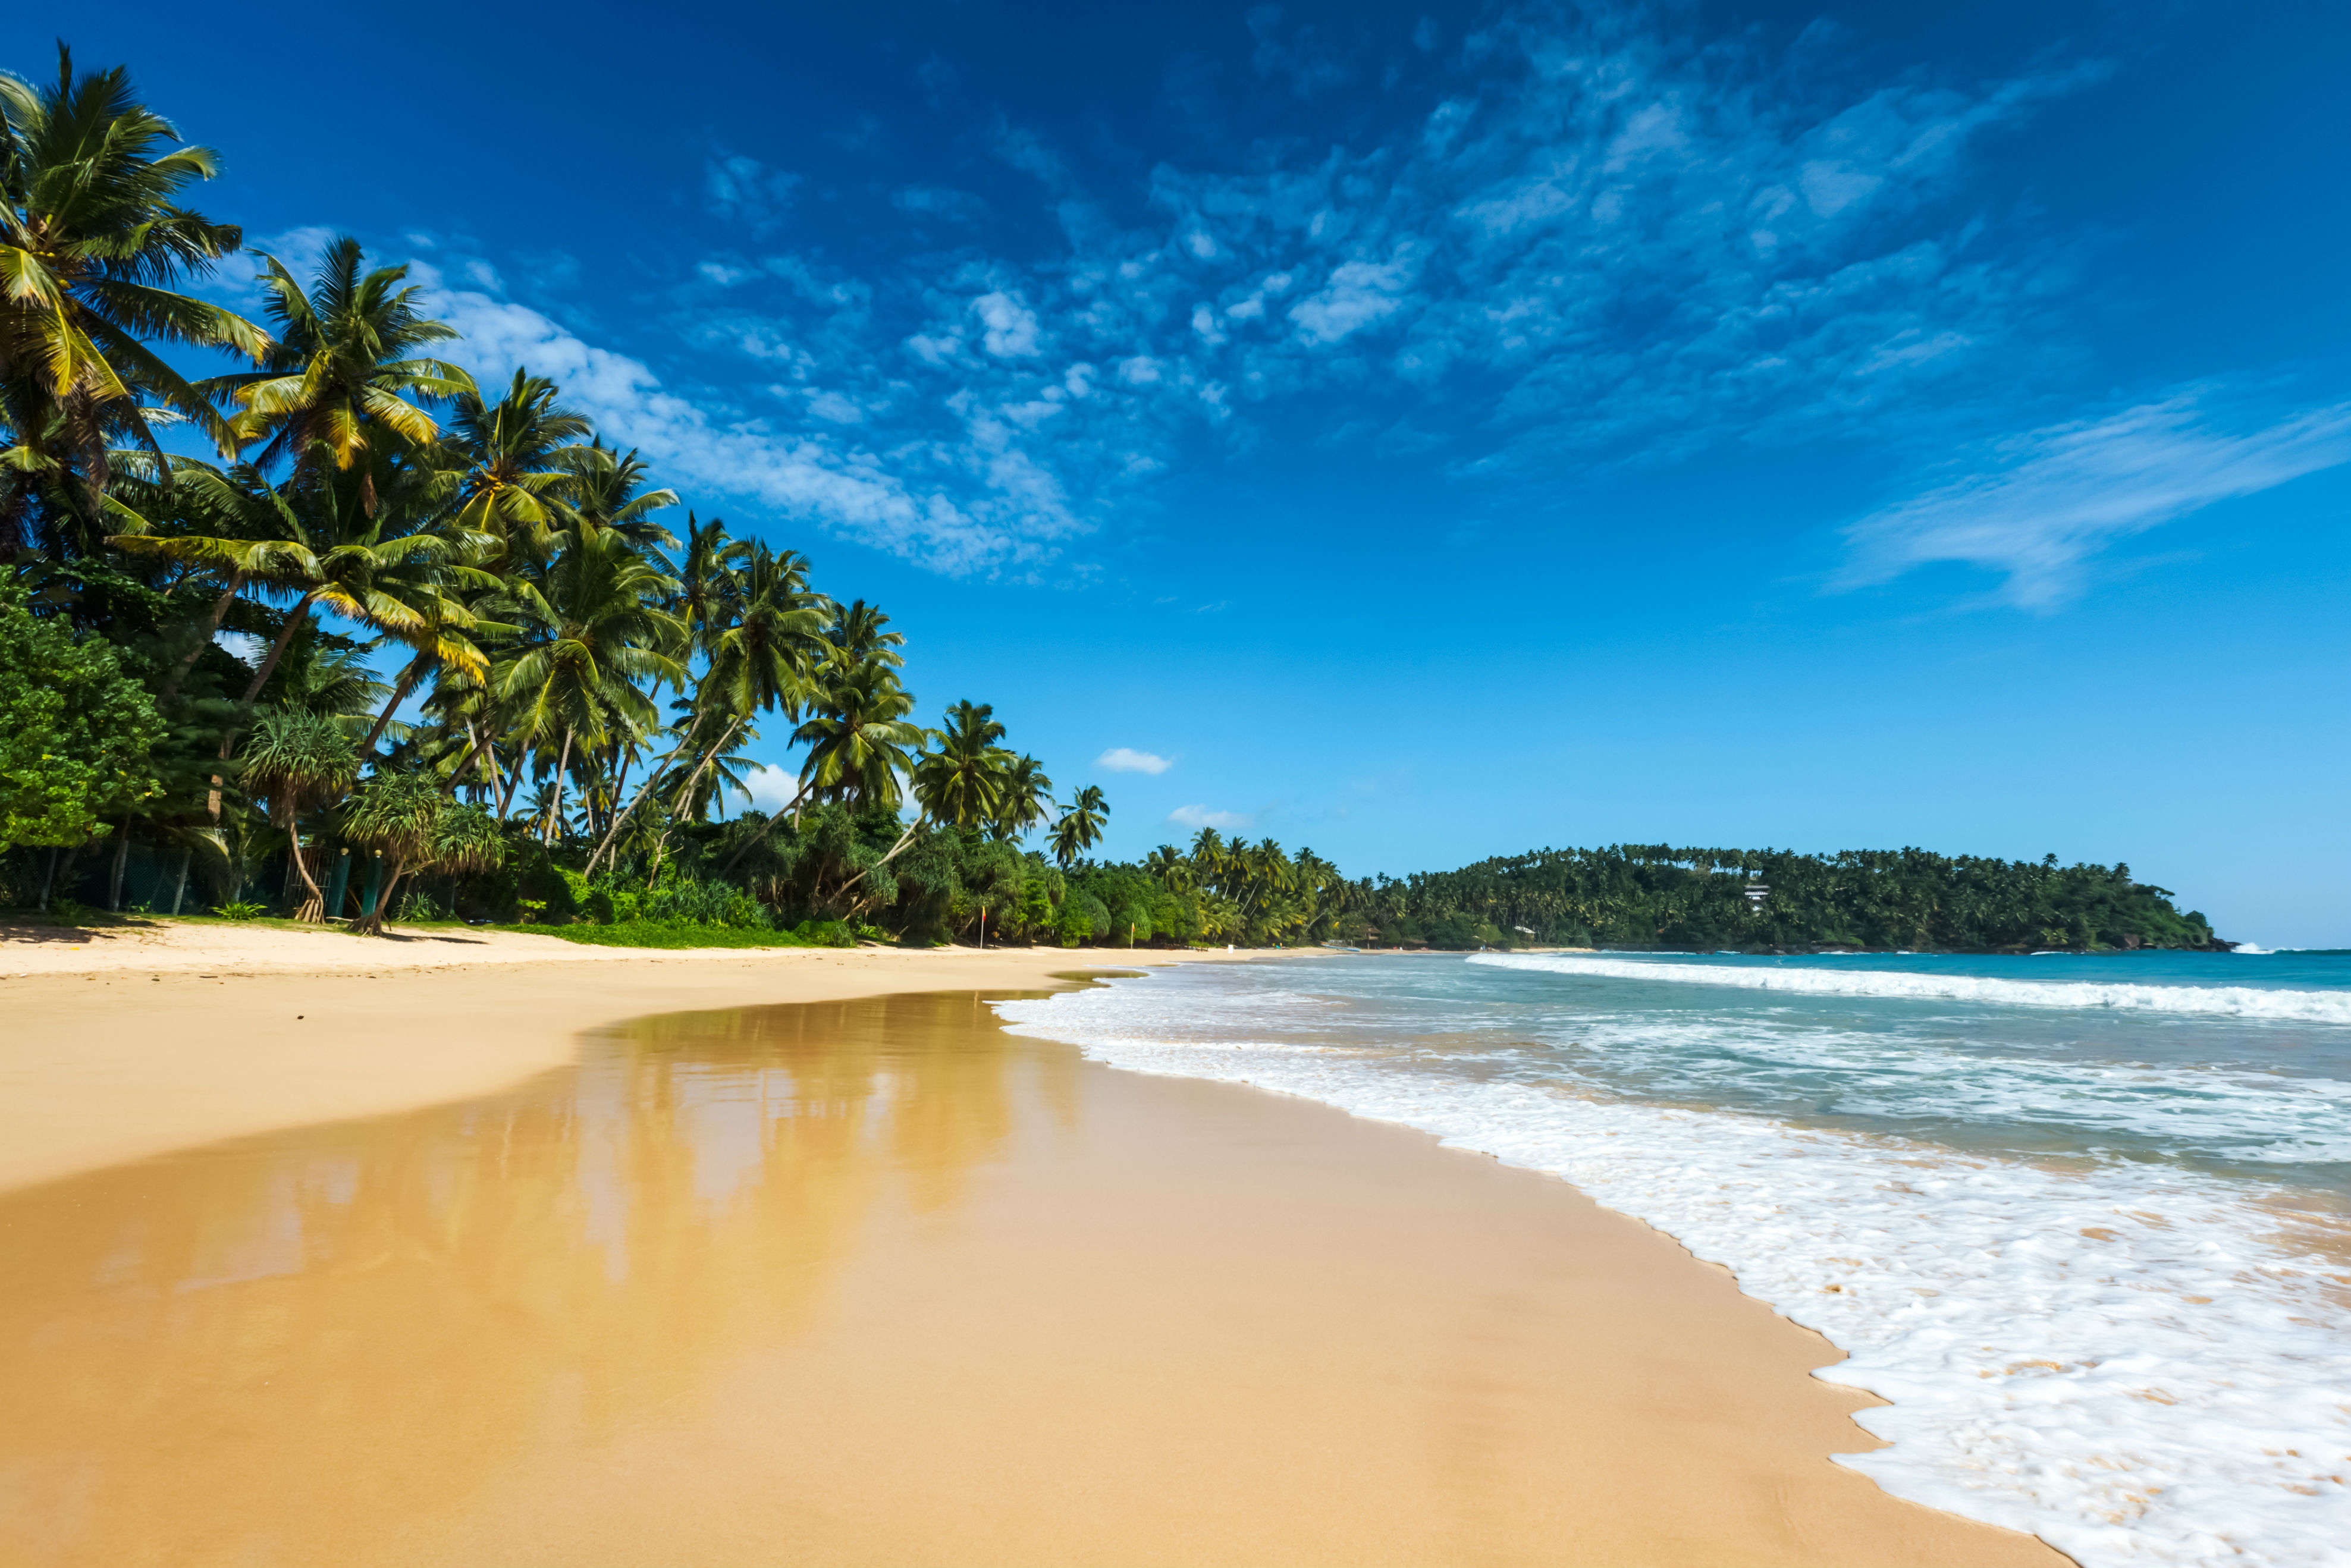 IRCTC Sri Lanka package tour to commence in May